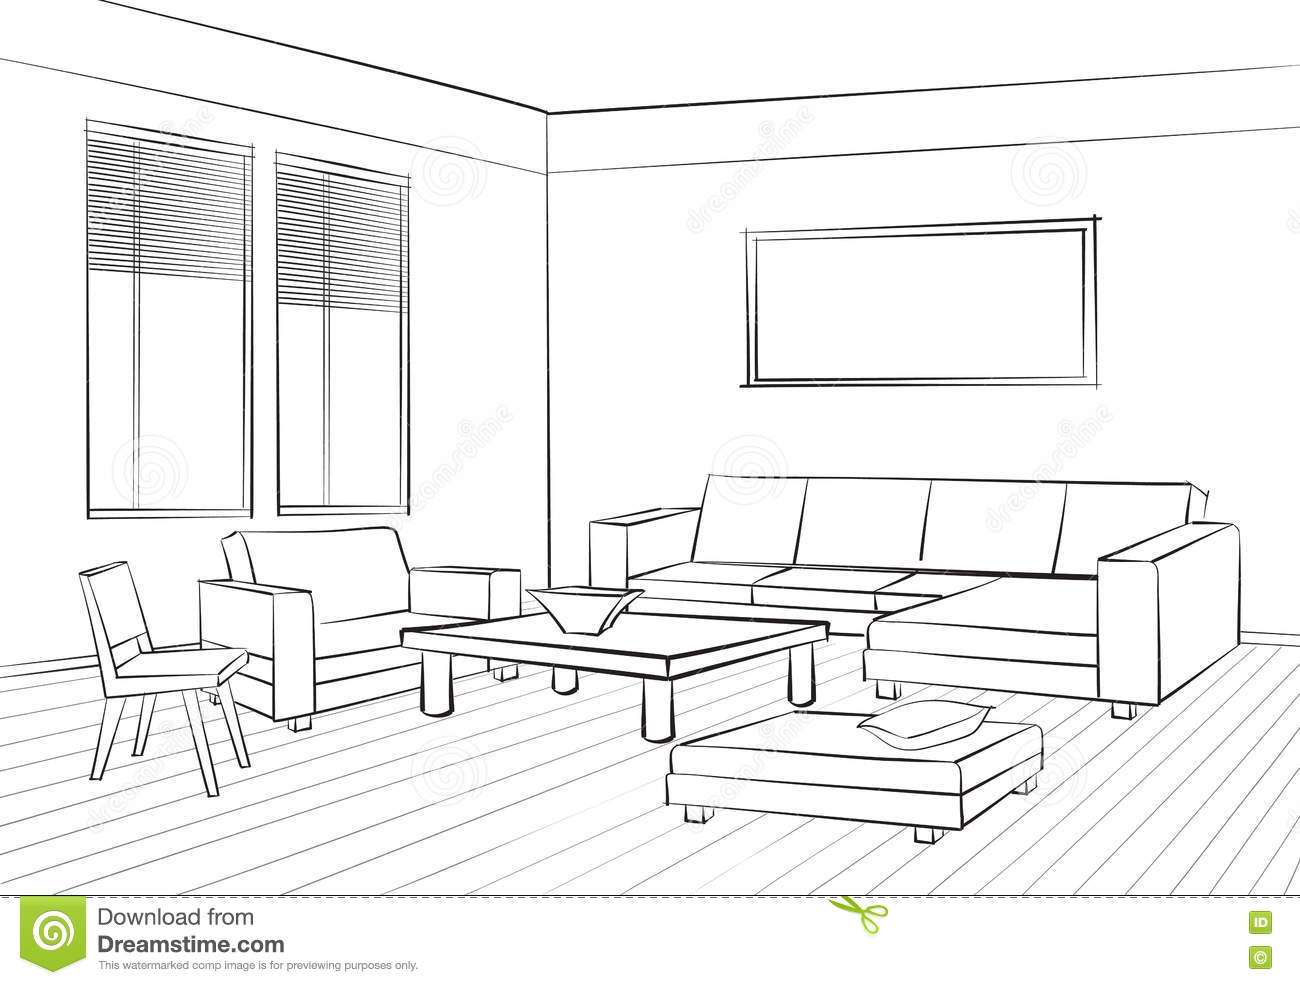 Home Interior Furniture With Sofa, Armchair, Table. Living Room Drawing  Design. Engraves Hand Drawing Illustration